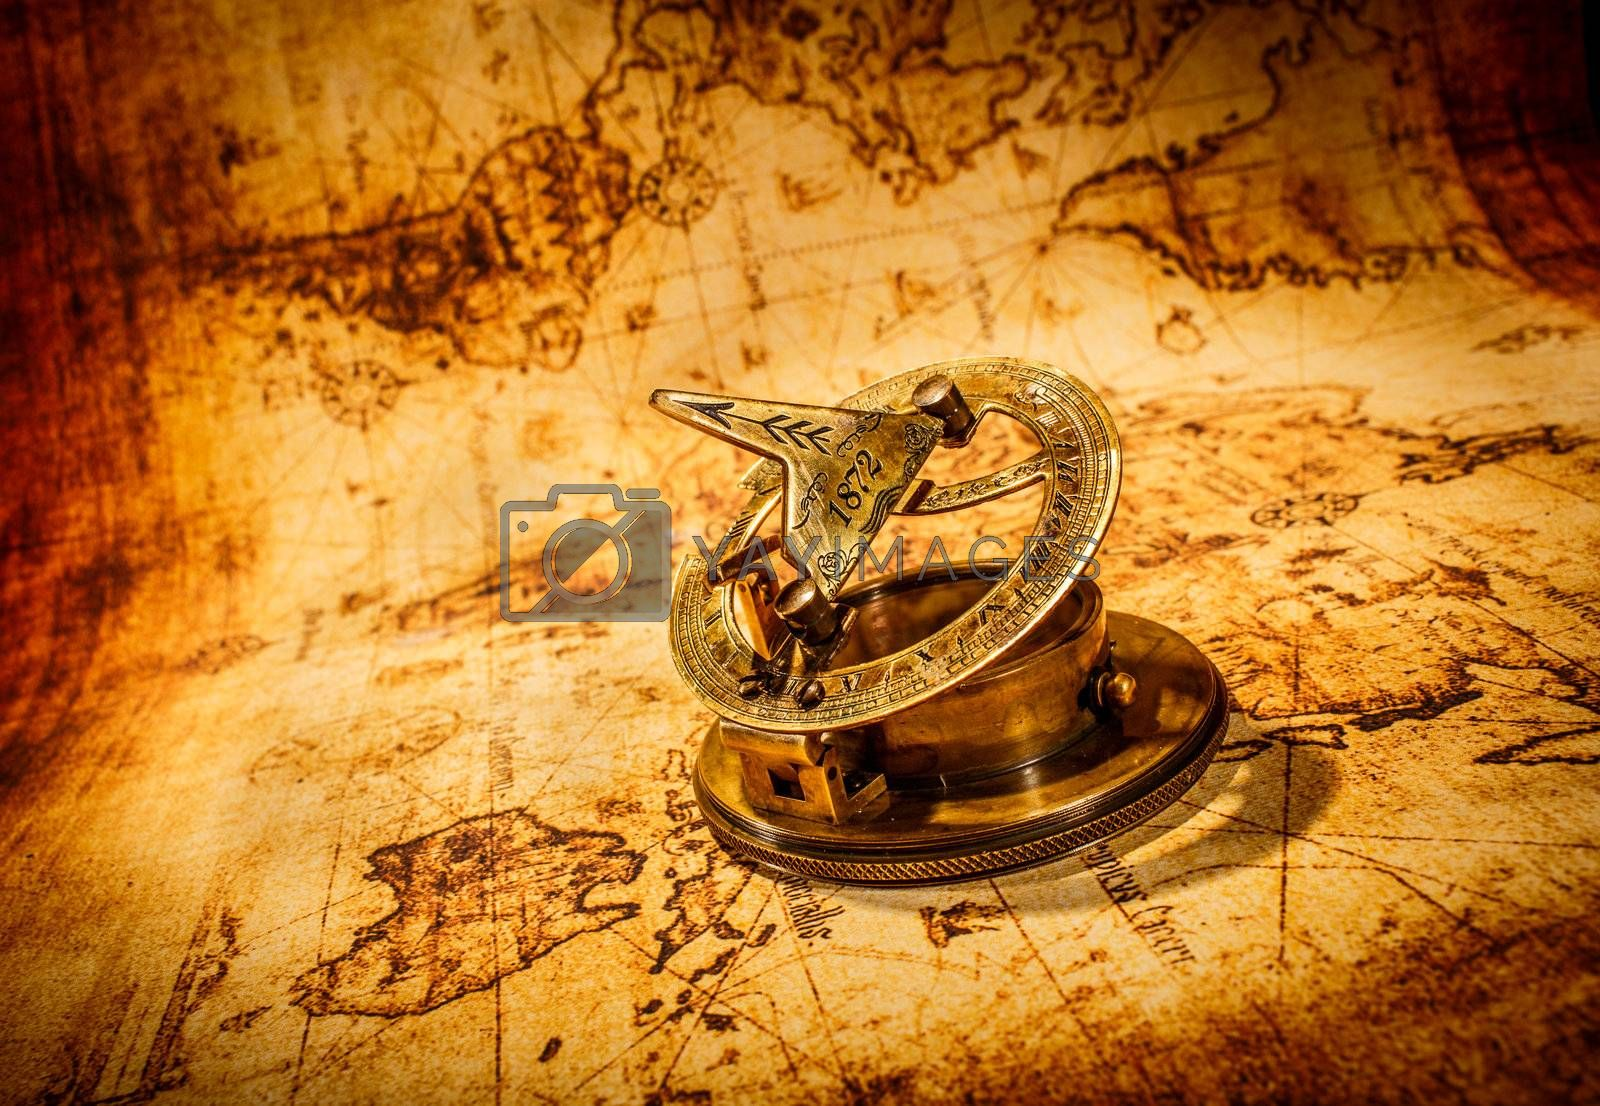 Vintage still life. Vintage compass lies on an ancient world map.